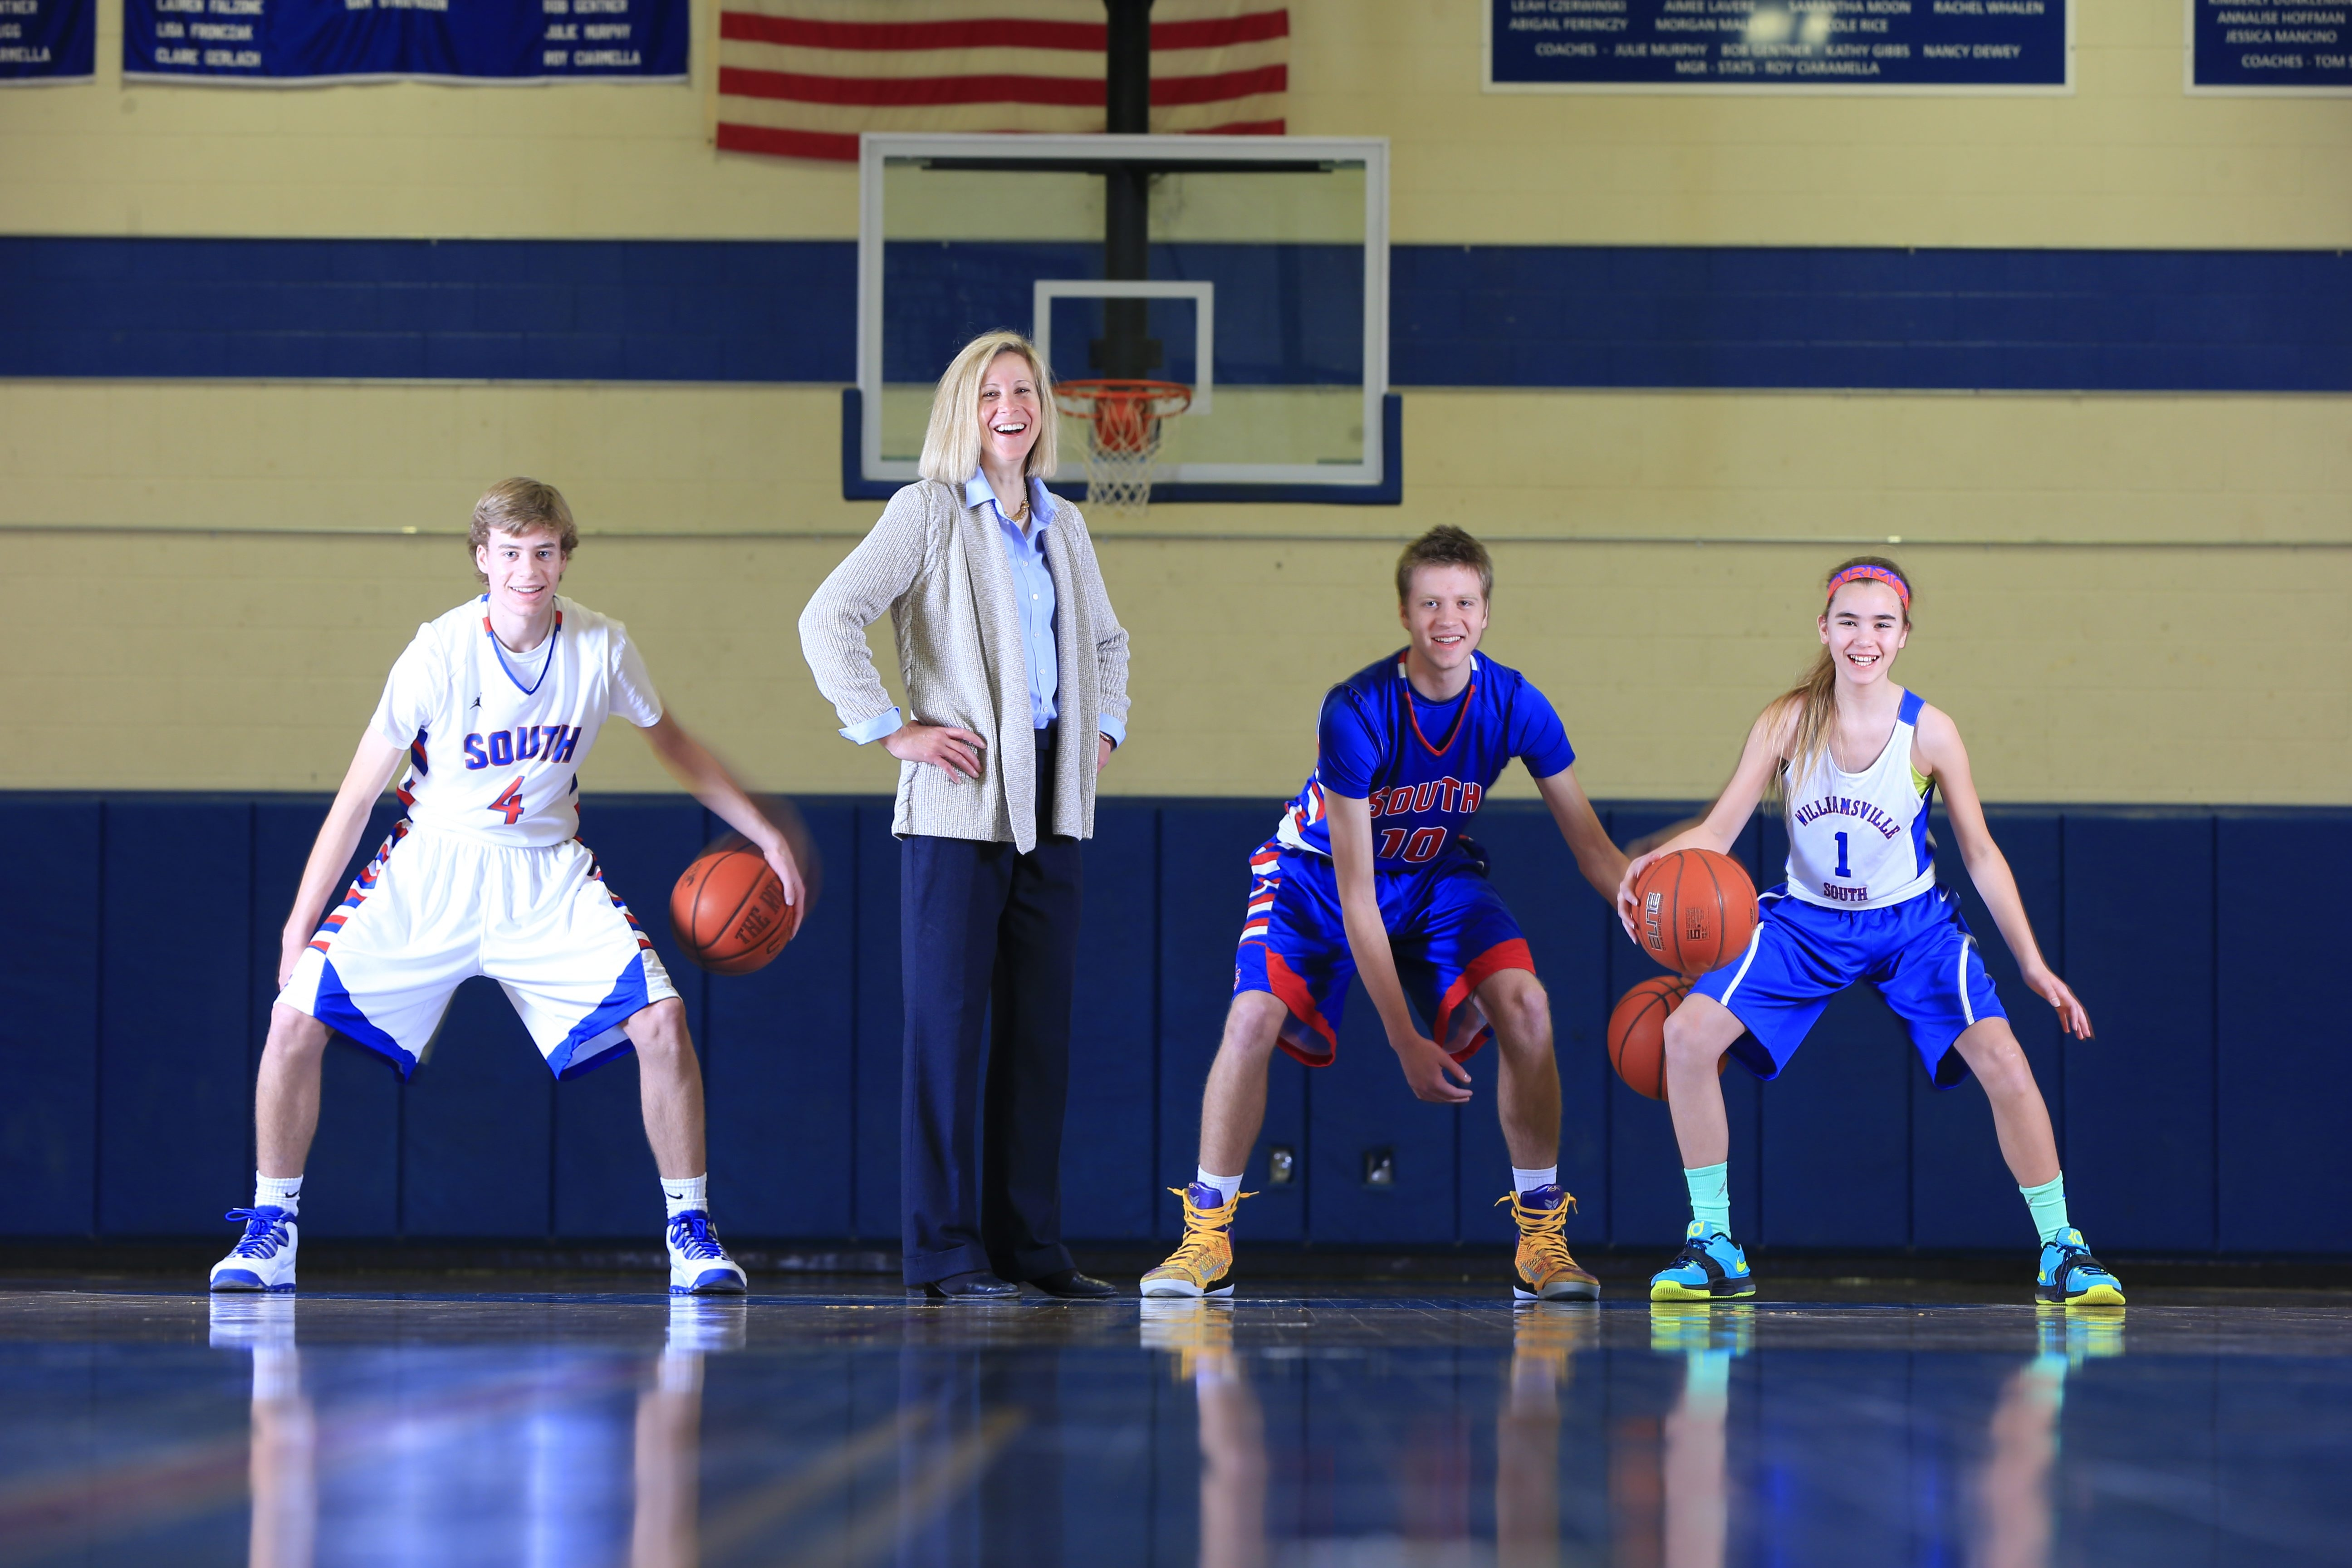 Williamsville South girls varsity basketball coach Kristen Dolan and her sons Greg (in white), Graham (in blue) and daughter Hannah.